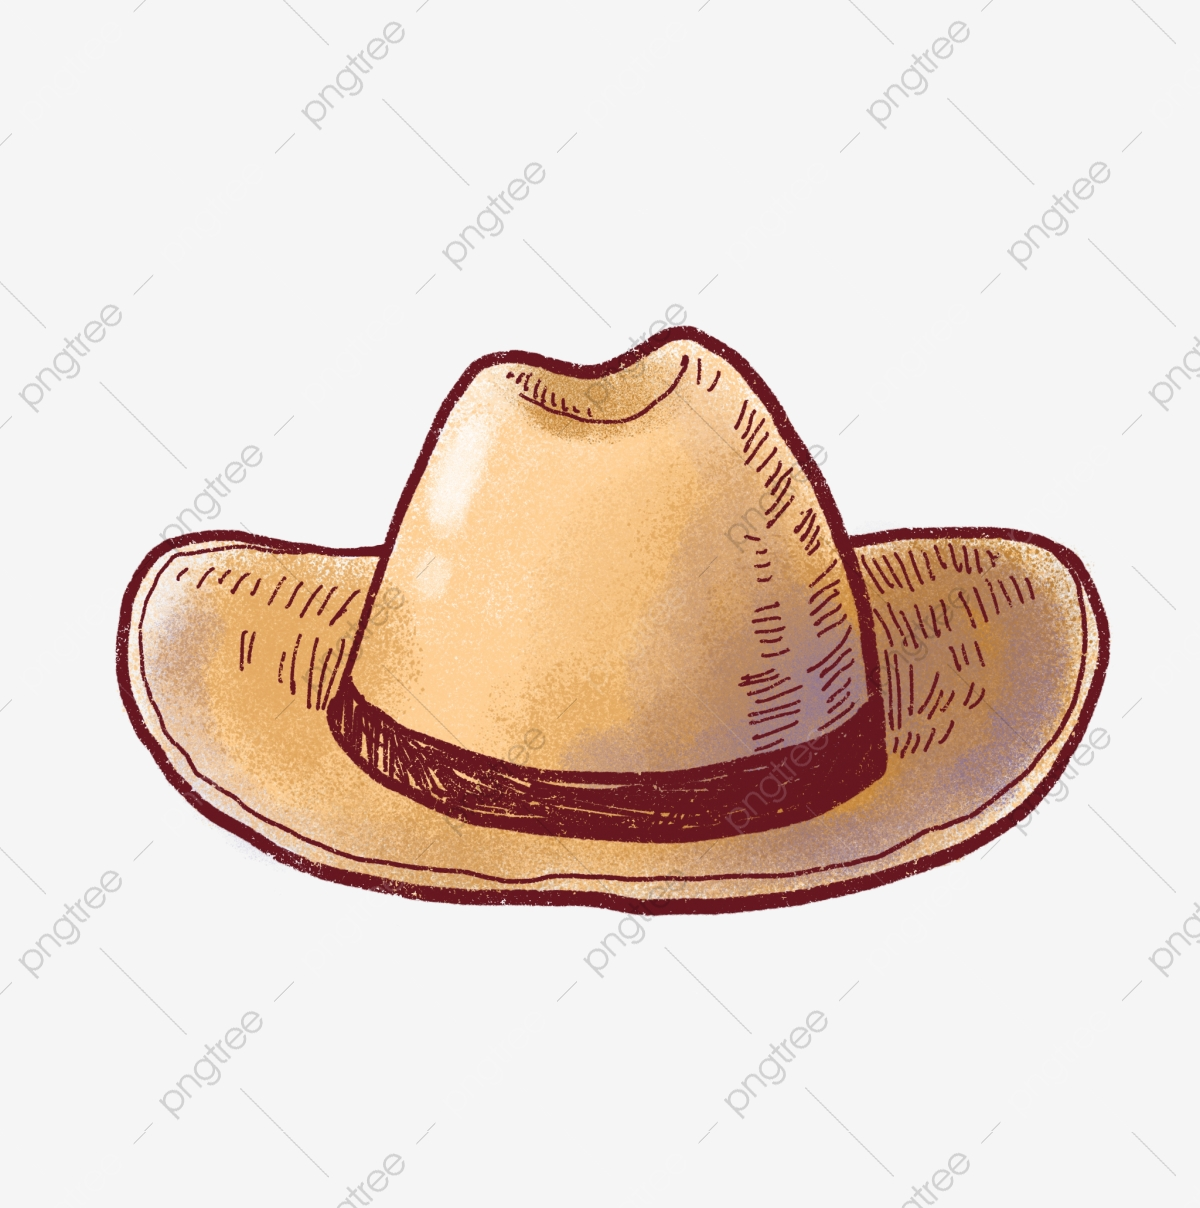 Western Cowboy Hat Png Free Material Cowboy Hat Western Cowboy Hat Handsome Png Transparent Clipart Image And Psd File For Free Download Cowboy hat png free download. https pngtree com freepng western cowboy hat png free material 4425250 html